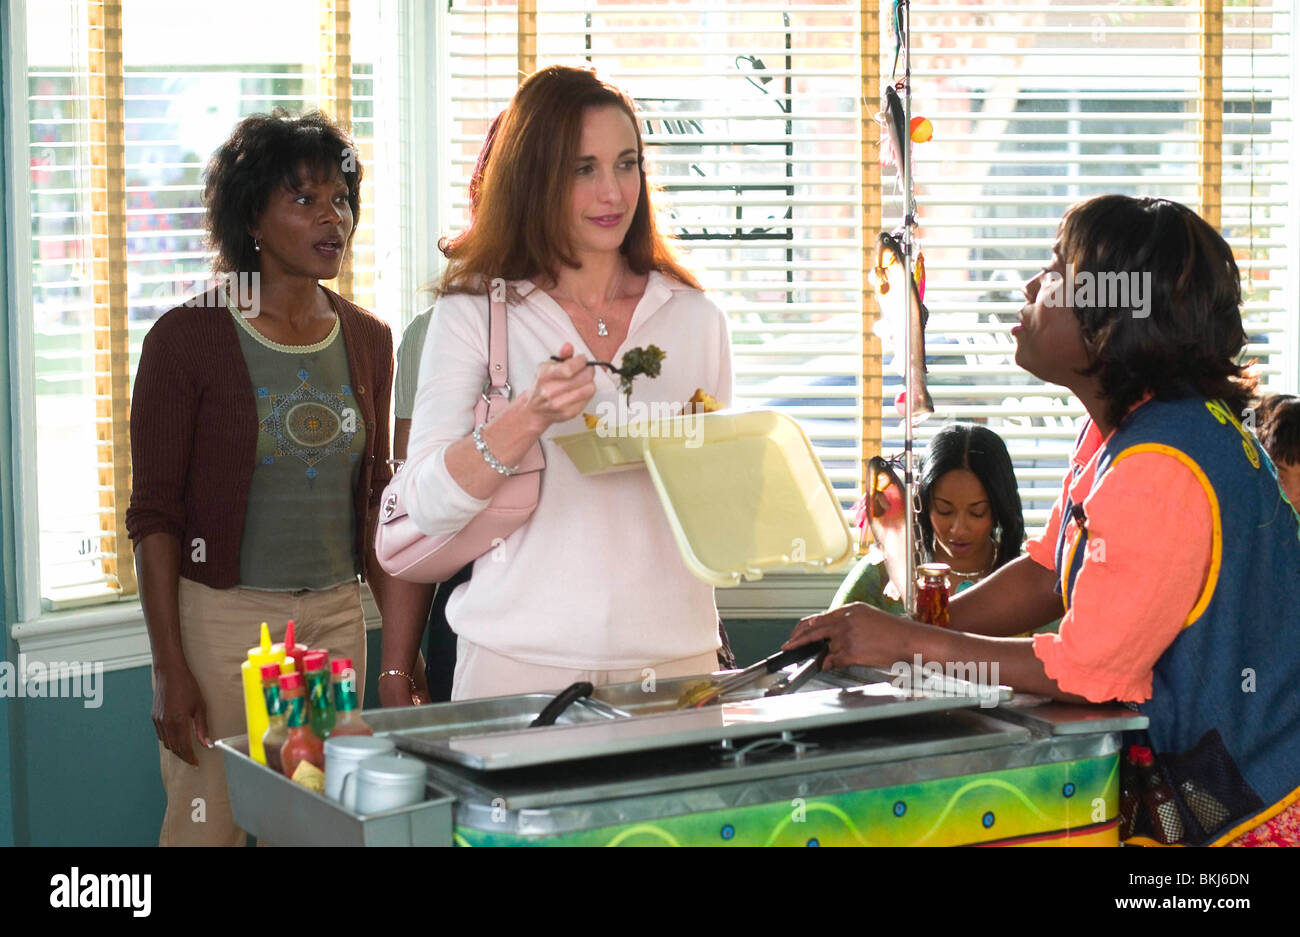 BEAUTY SHOP 2005 ANDIE MACDOWELL BESH 002 01